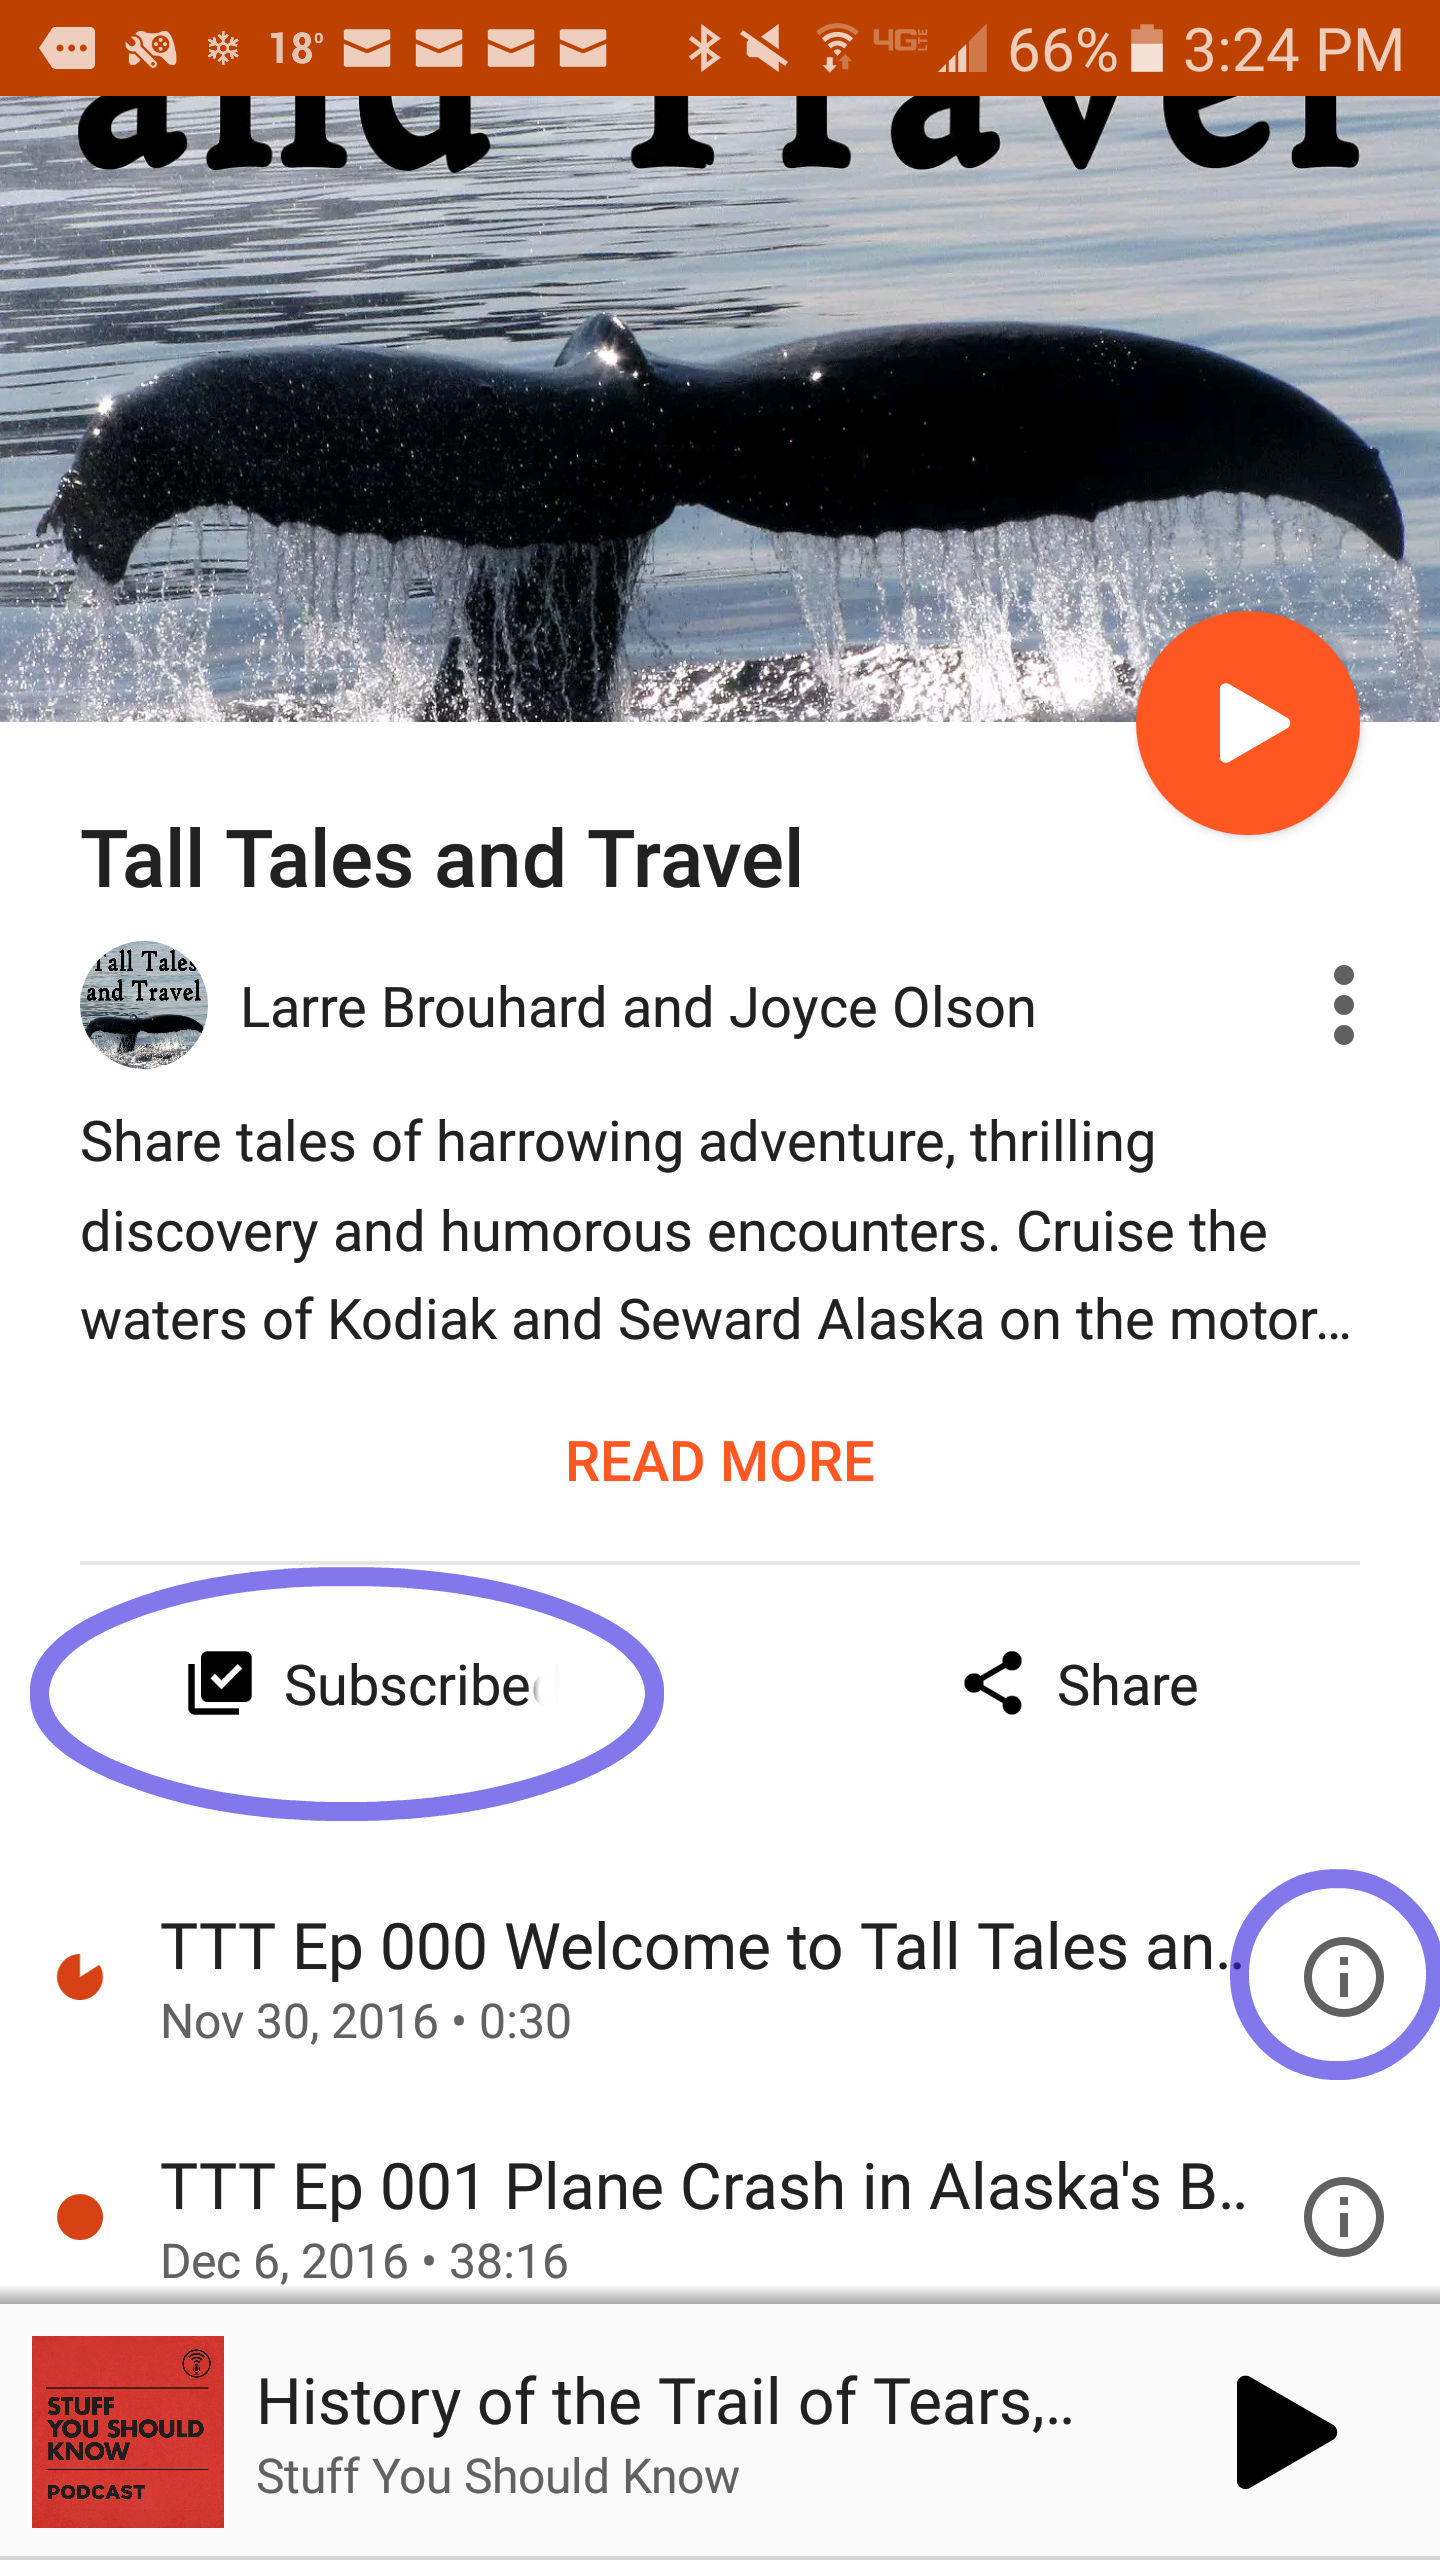 PHOTO 4. Podcast episode list on the Google Play Music app